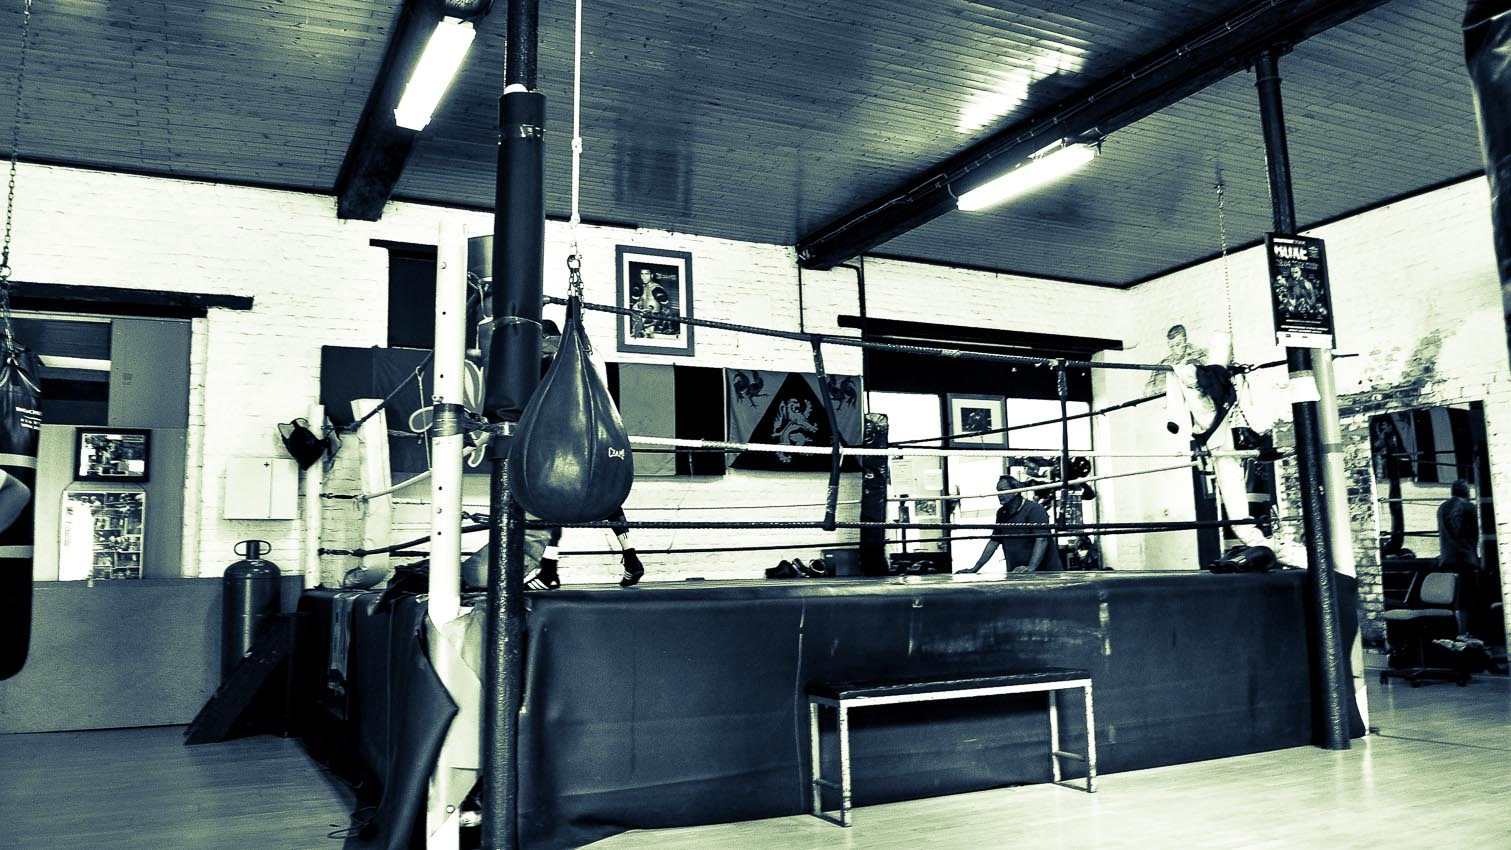 07-sport-boxe-billard-fitness-location-decors-film-cinema-photo-belgium-bruxelles